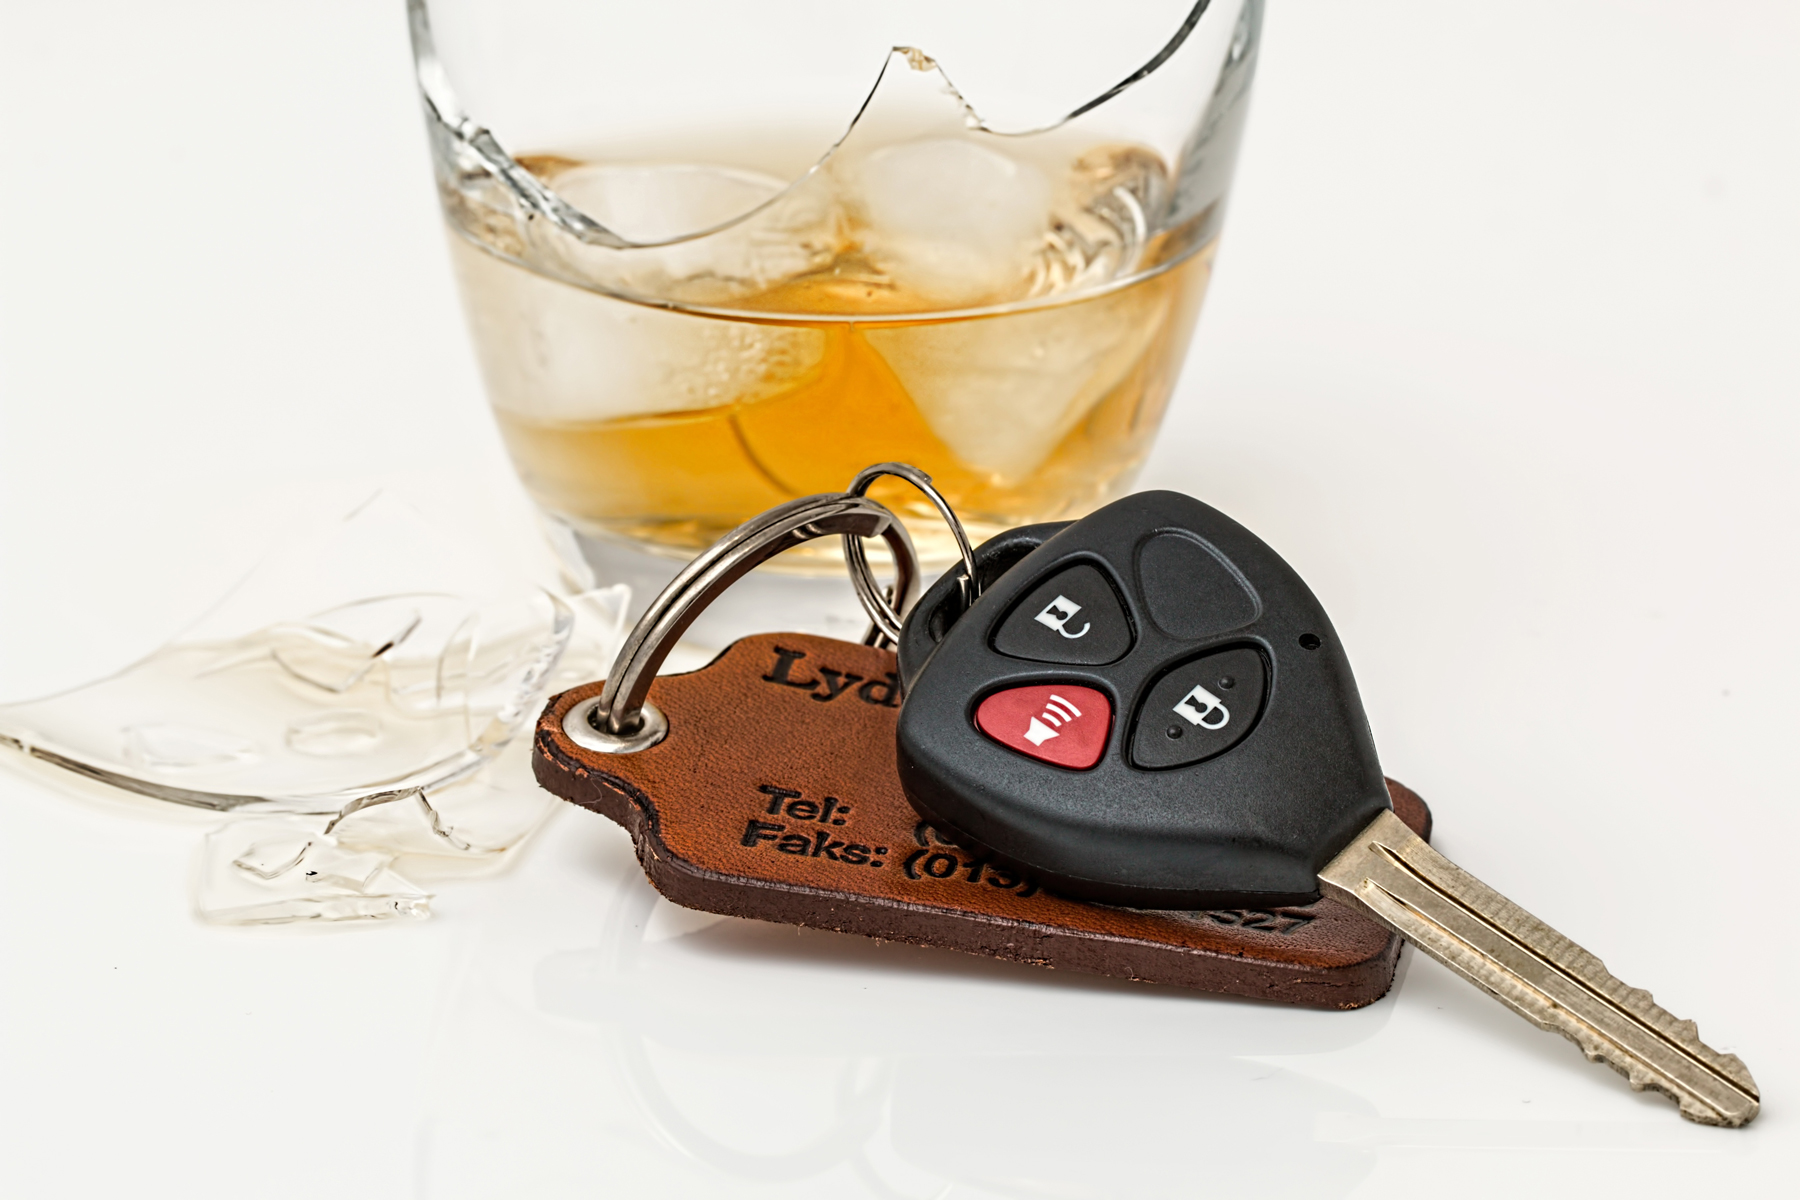 A pair of car keys on a table with a broken glass containing alcohol behind